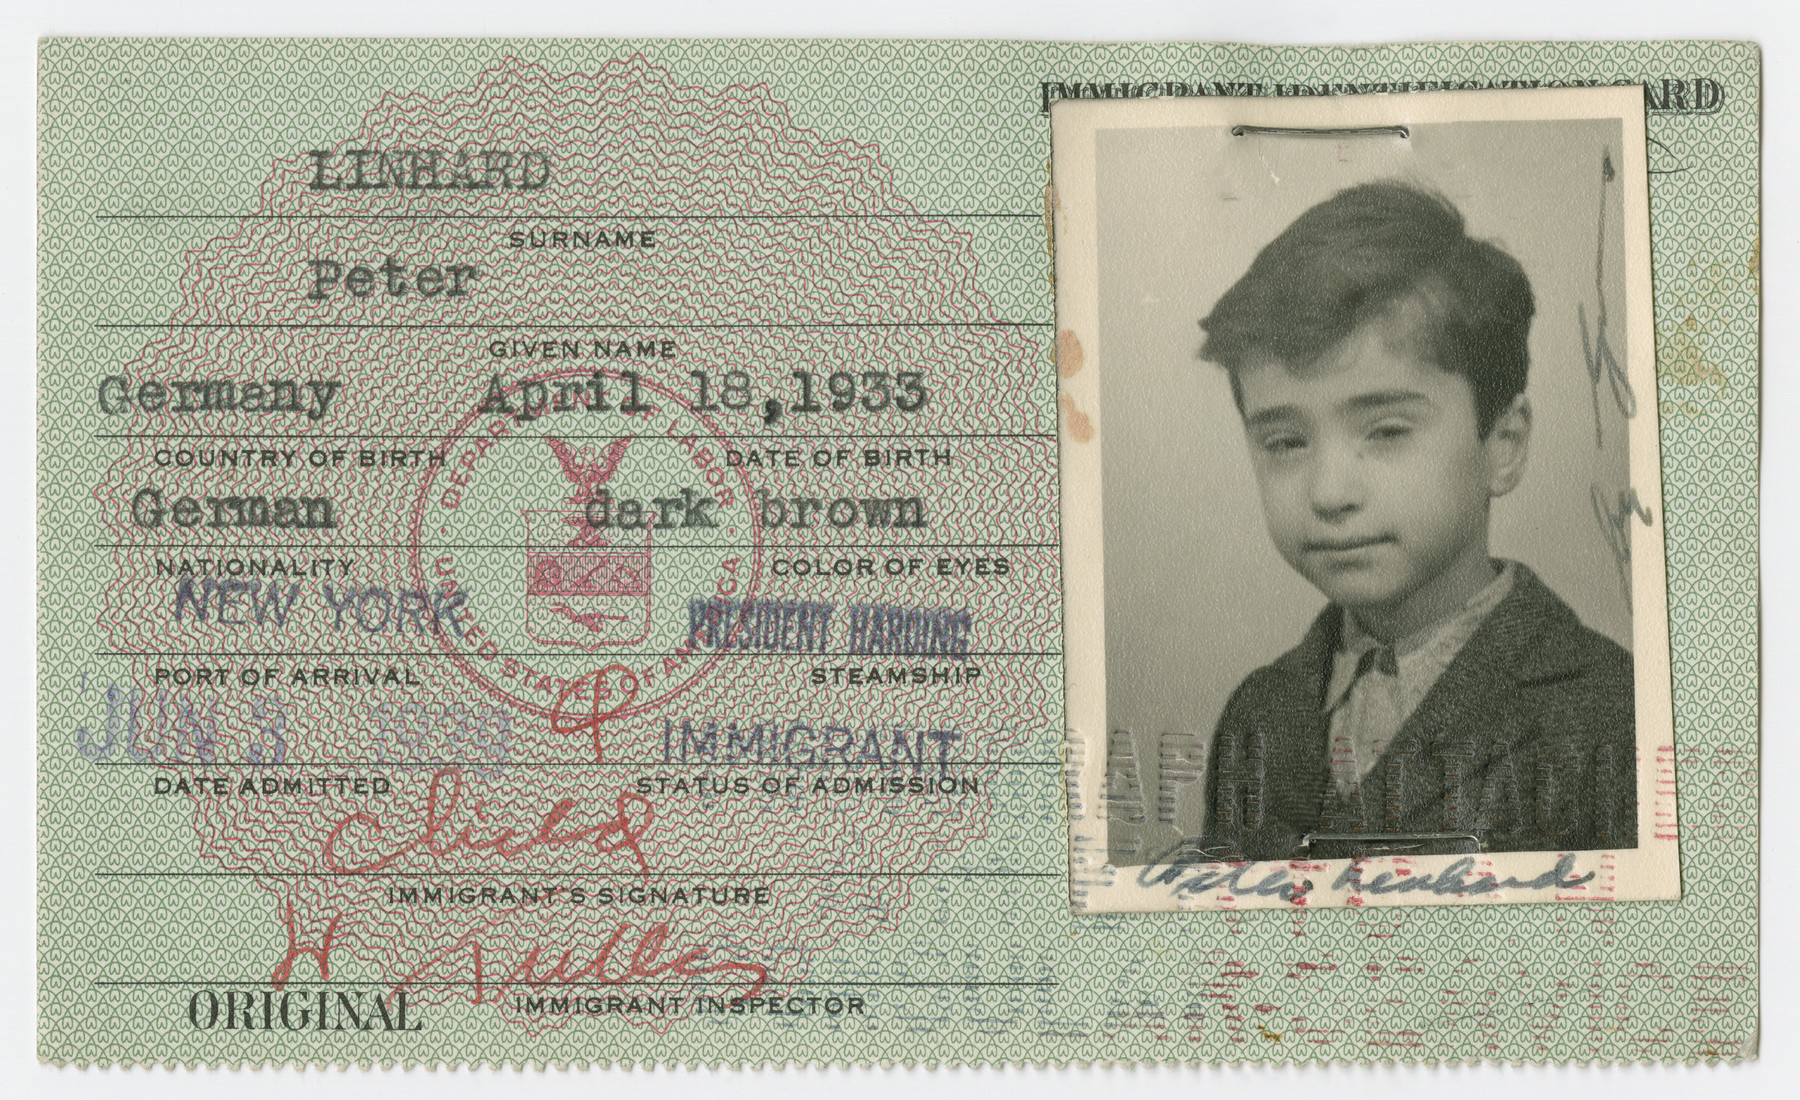 United States Immigrant Identification Card issued to Peter Linhard  It states he was born in Germany though he was born in Vienna.